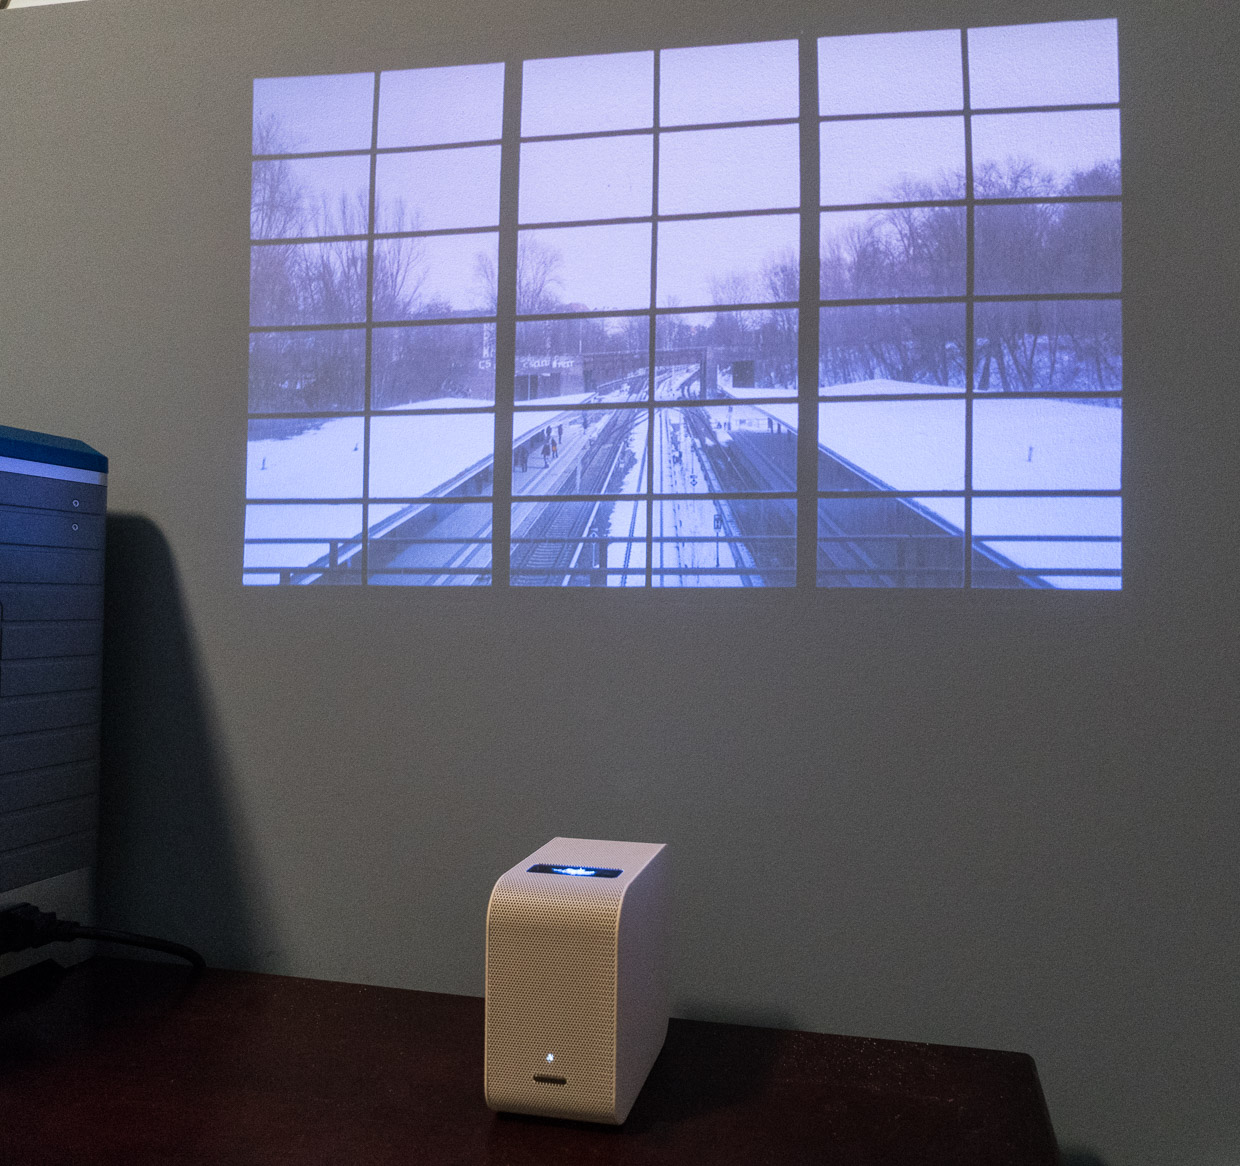 Sony Lspx P1 Short Throw Projector Review Brighten Up Any